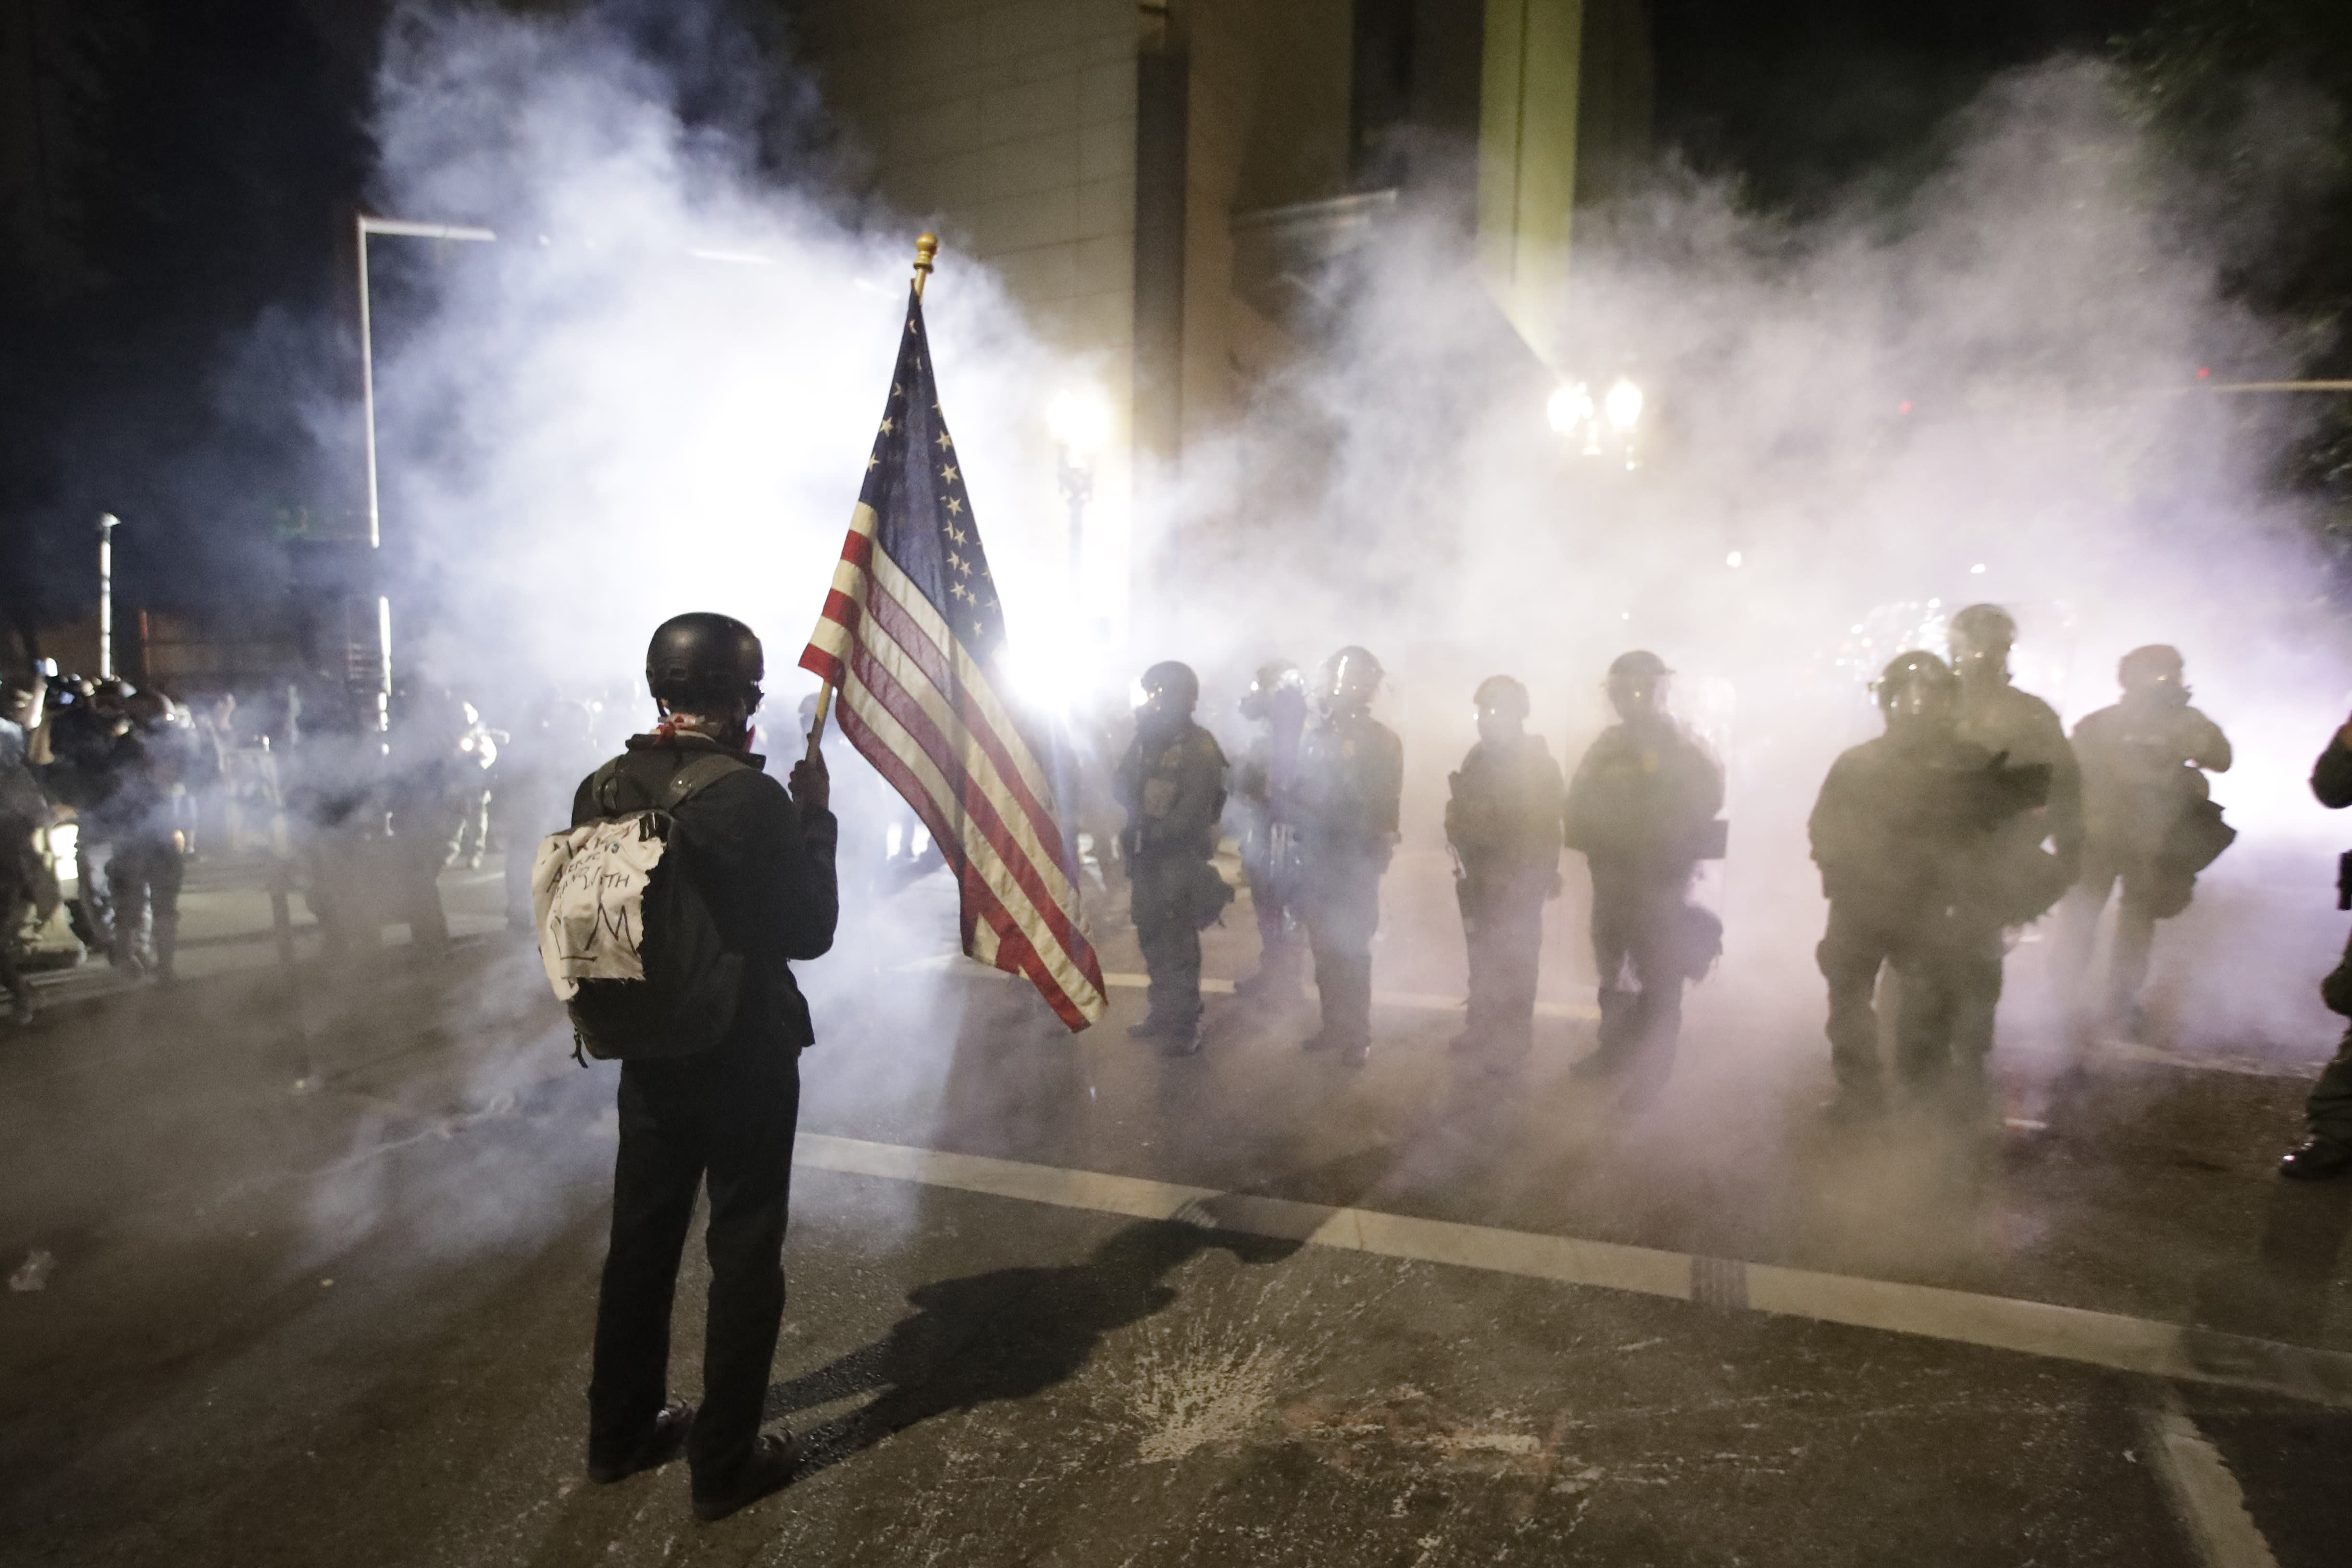 A demonstrator waves a U.S. flags in front of federal agents after tear gas is deployed during a Black Lives Matter protest at the Mark O. Hatfield United States Courthouse Thursday, July 30, 2020, in Portland, Ore. (AP Photo/Marcio Jose Sanchez)